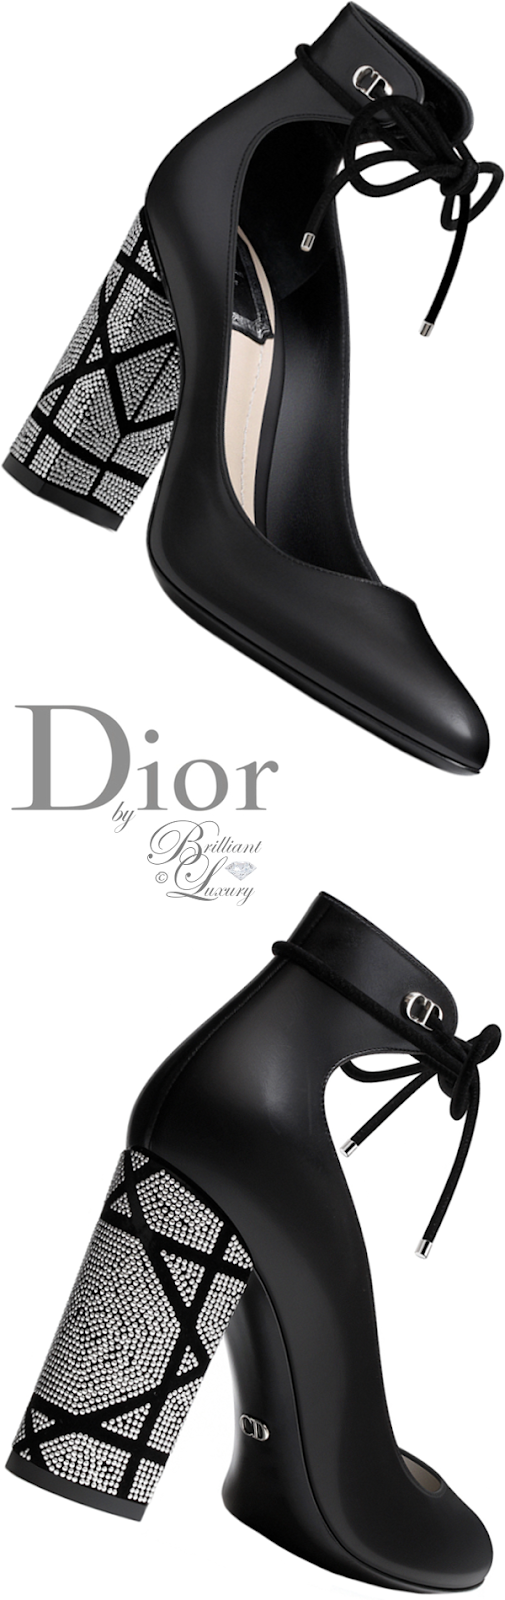 Brilliant Luxury ♦ Dior black smooth calfskin pump